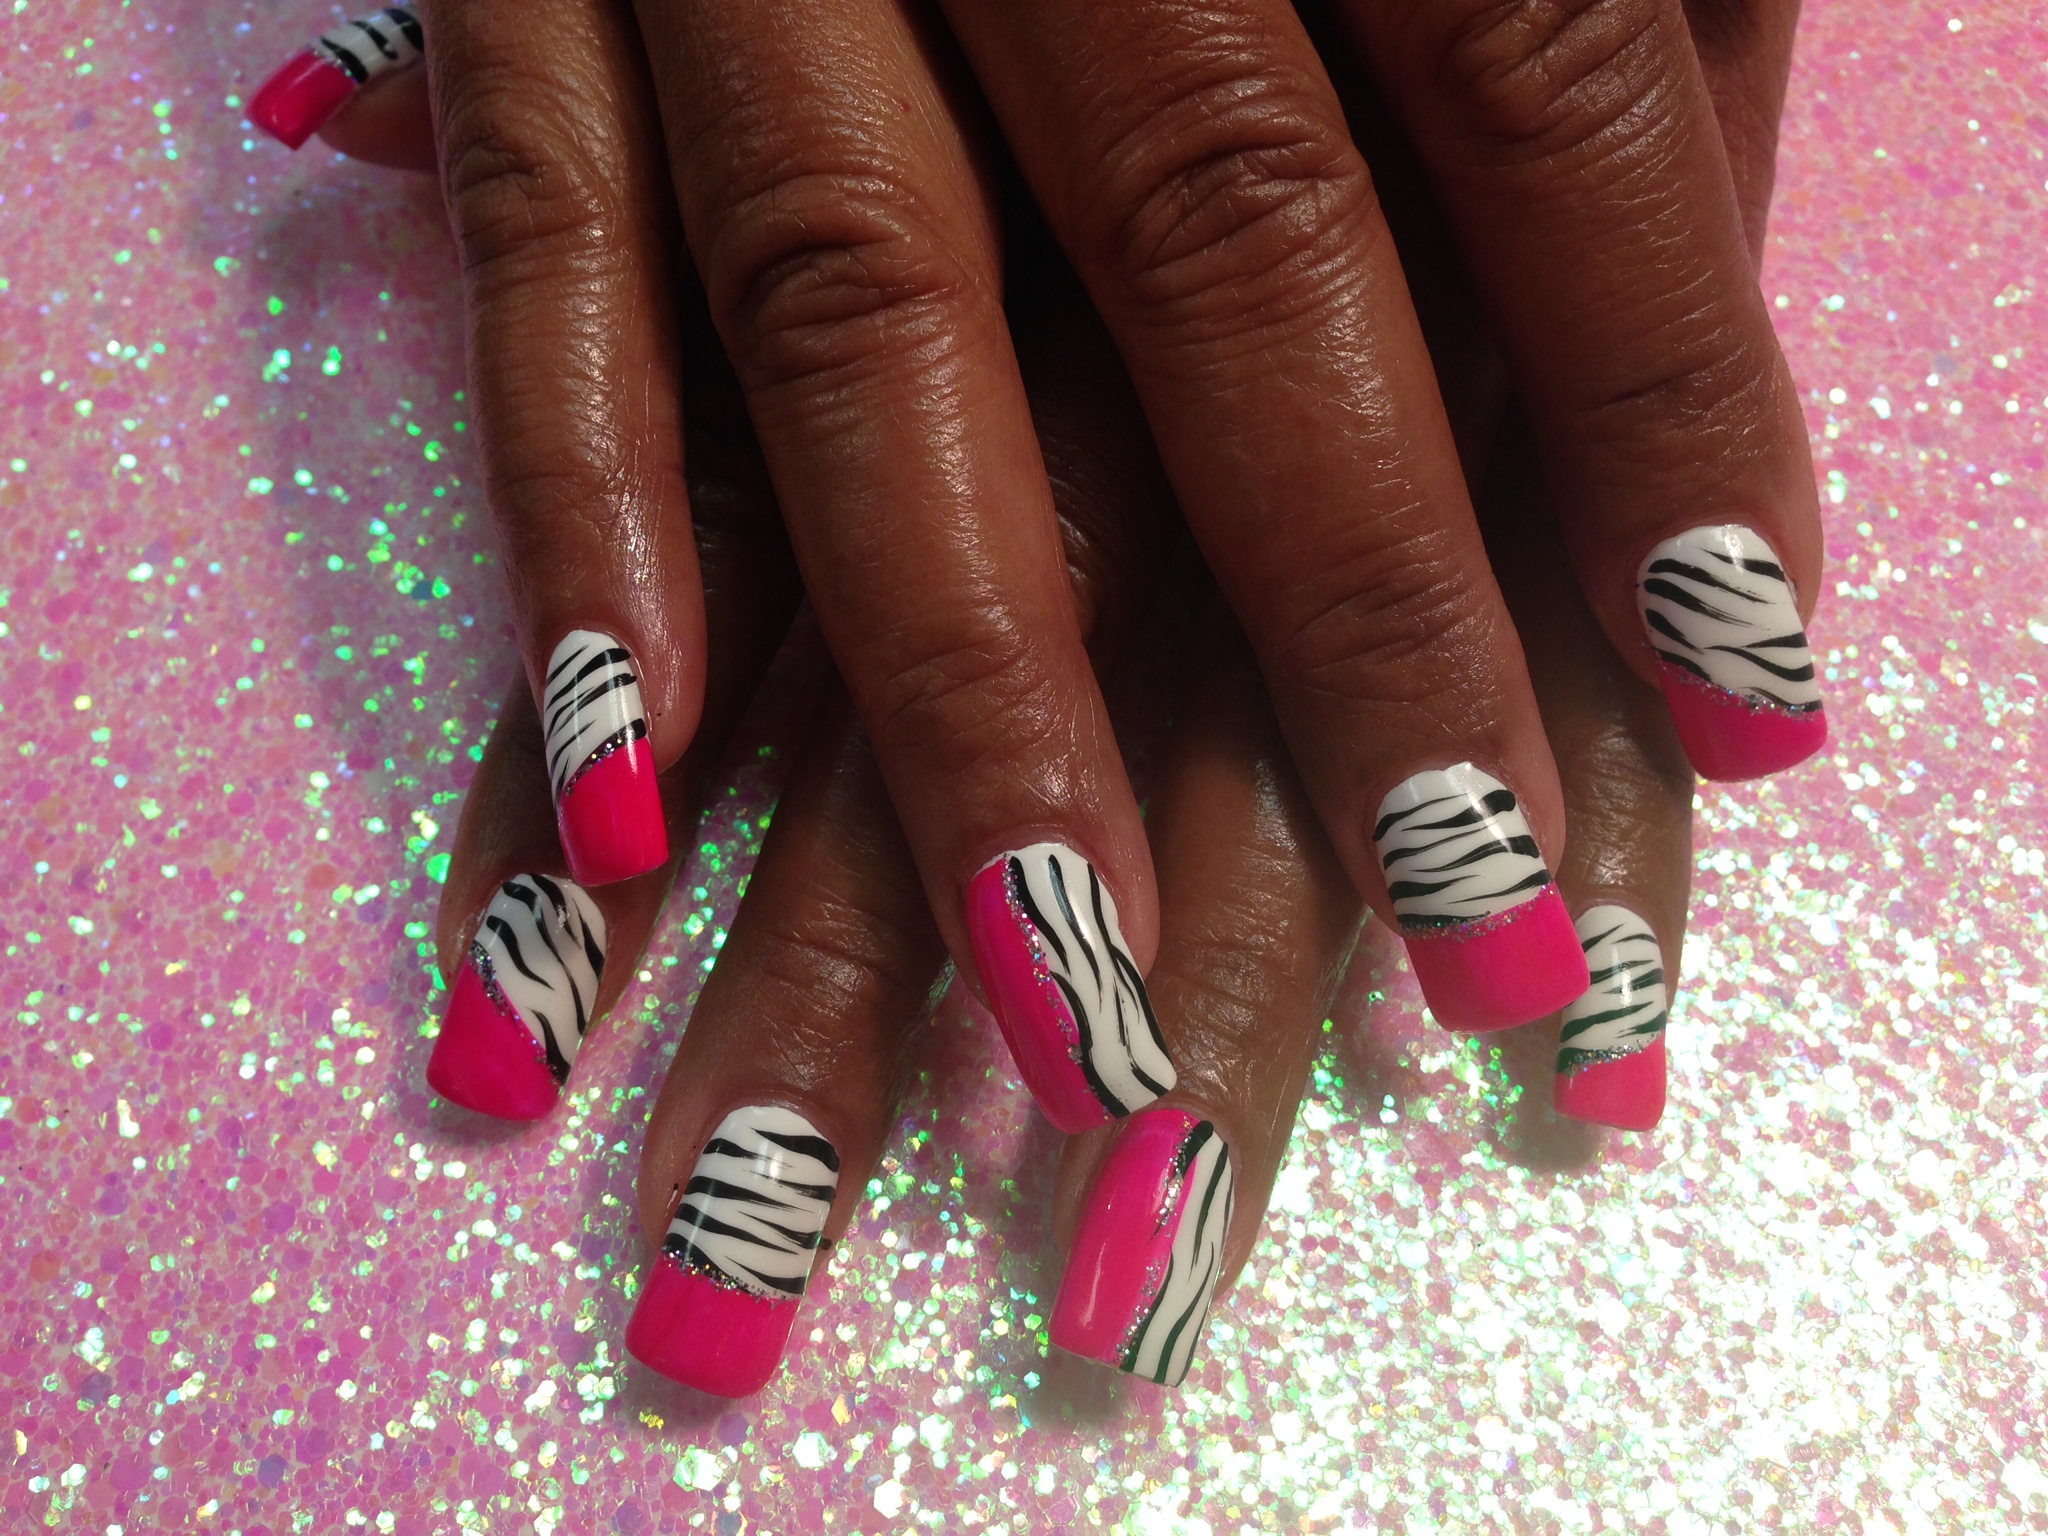 197g shiny bright pink tip straight or angled under line of sparkles topped prinsesfo Image collections